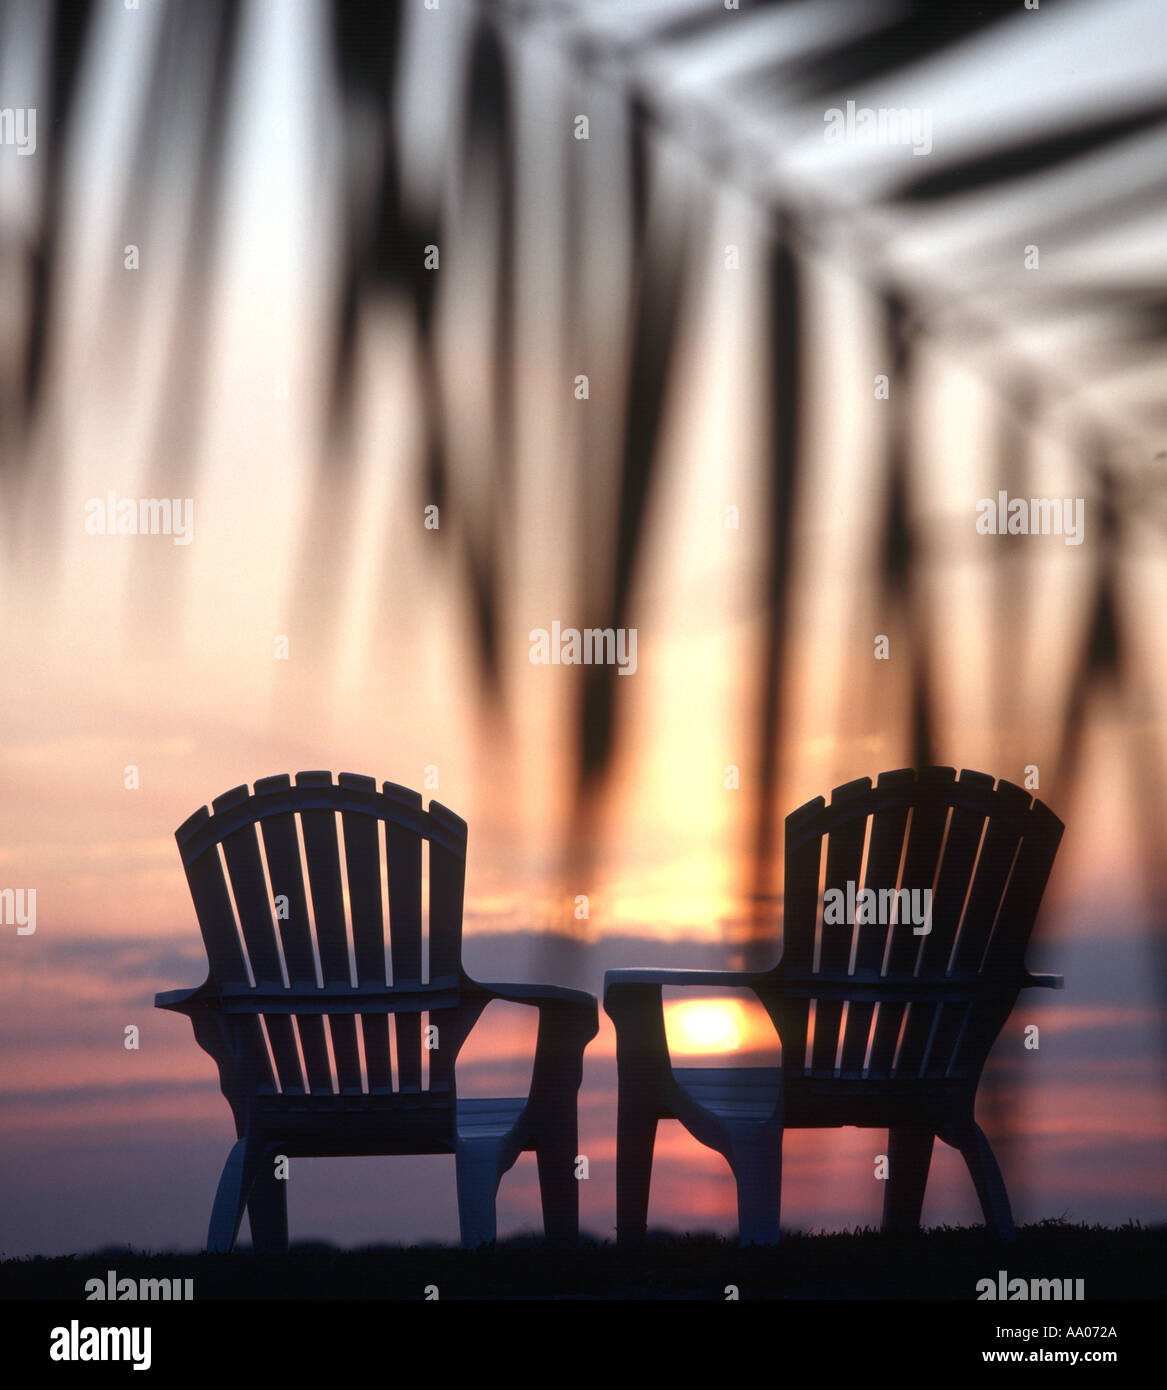 Adirondack Chairs Silhouetted On Palm Lined Beach At Sunset